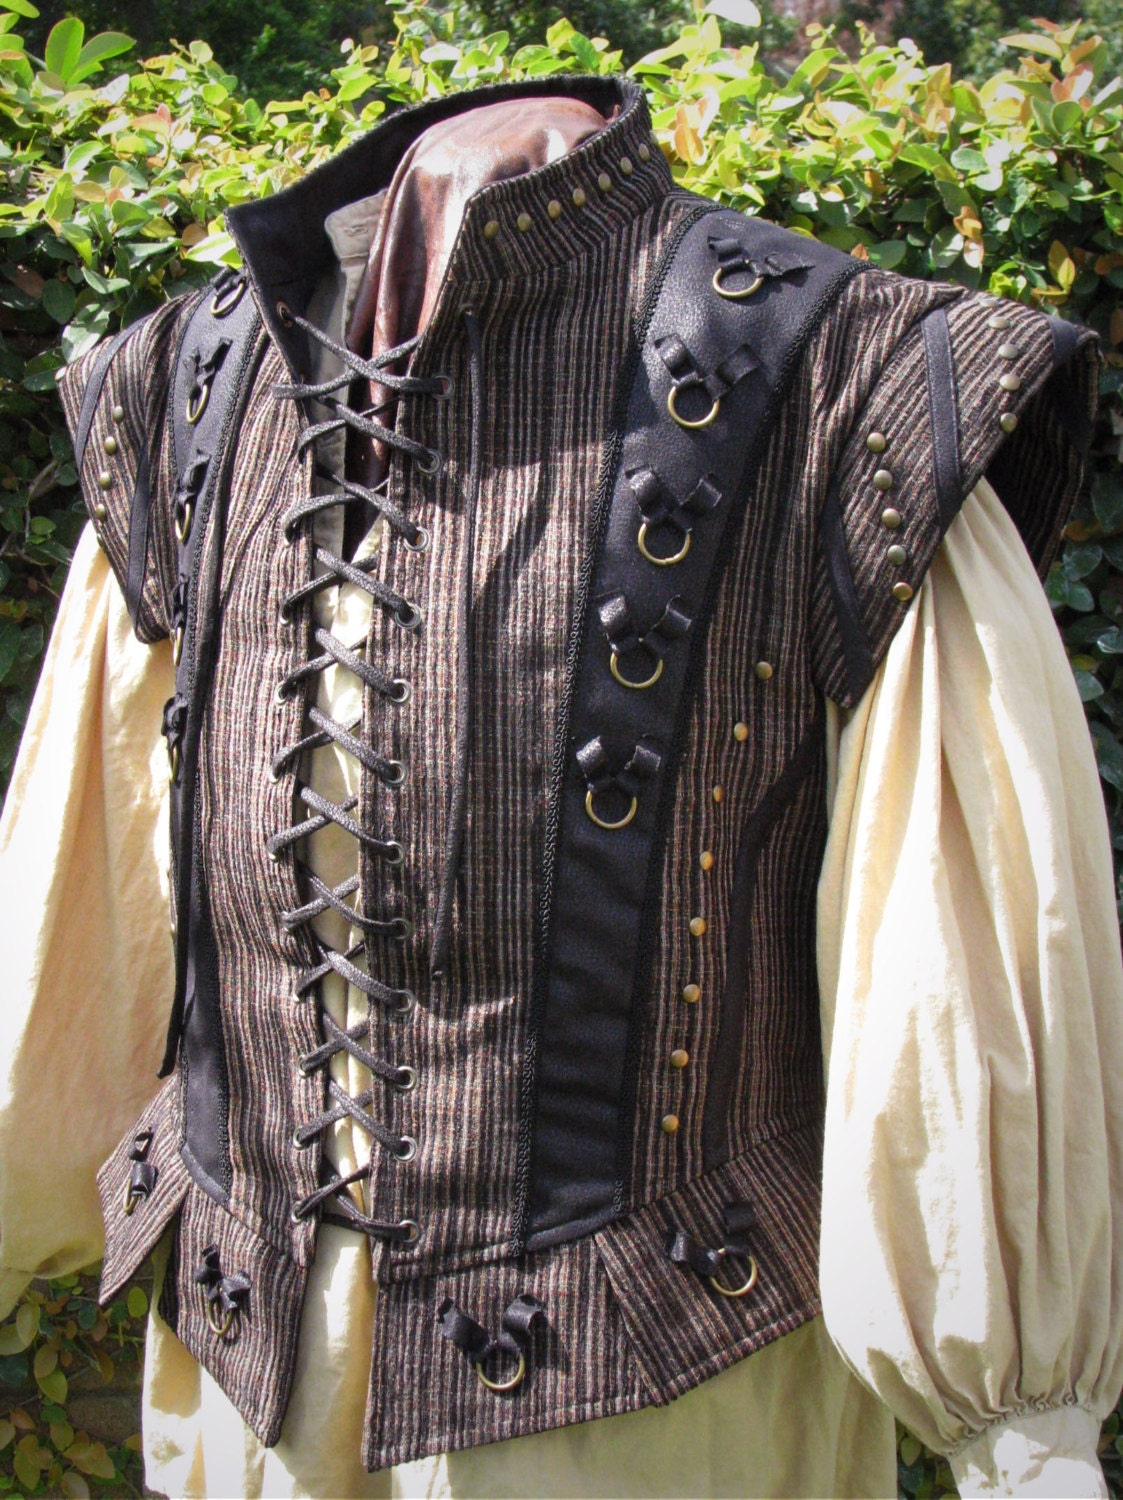 Medieval Dude S Black And Textured Stripe Doublet Ready To